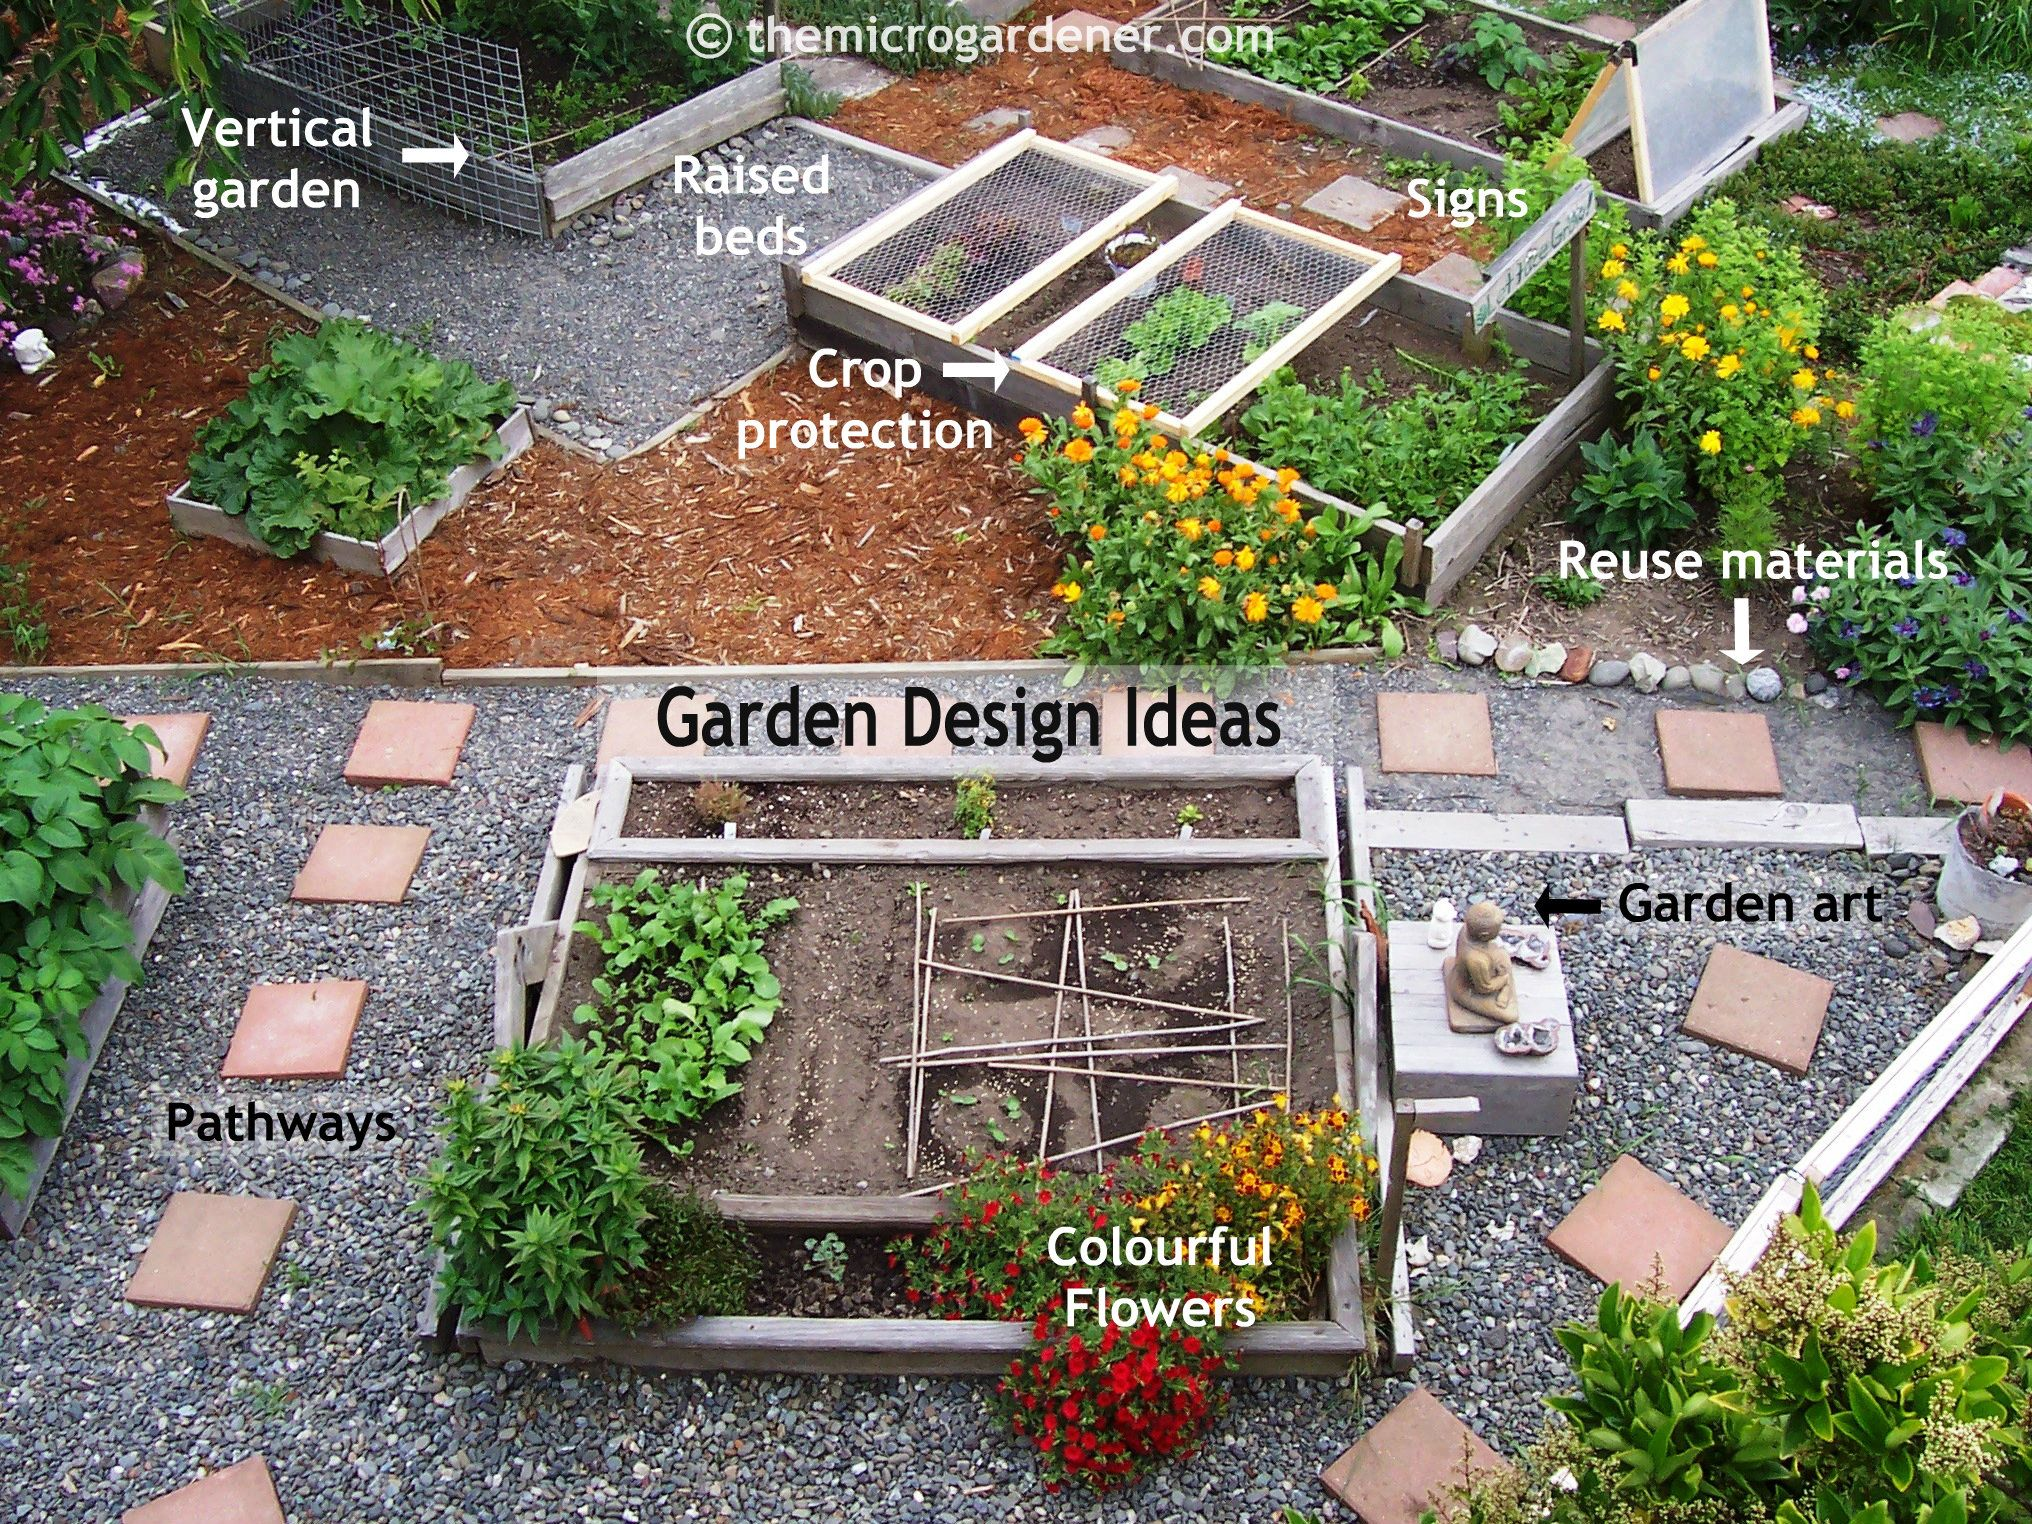 Small garden design ideas on pinterest vertical gardens for Garden design ideas photos